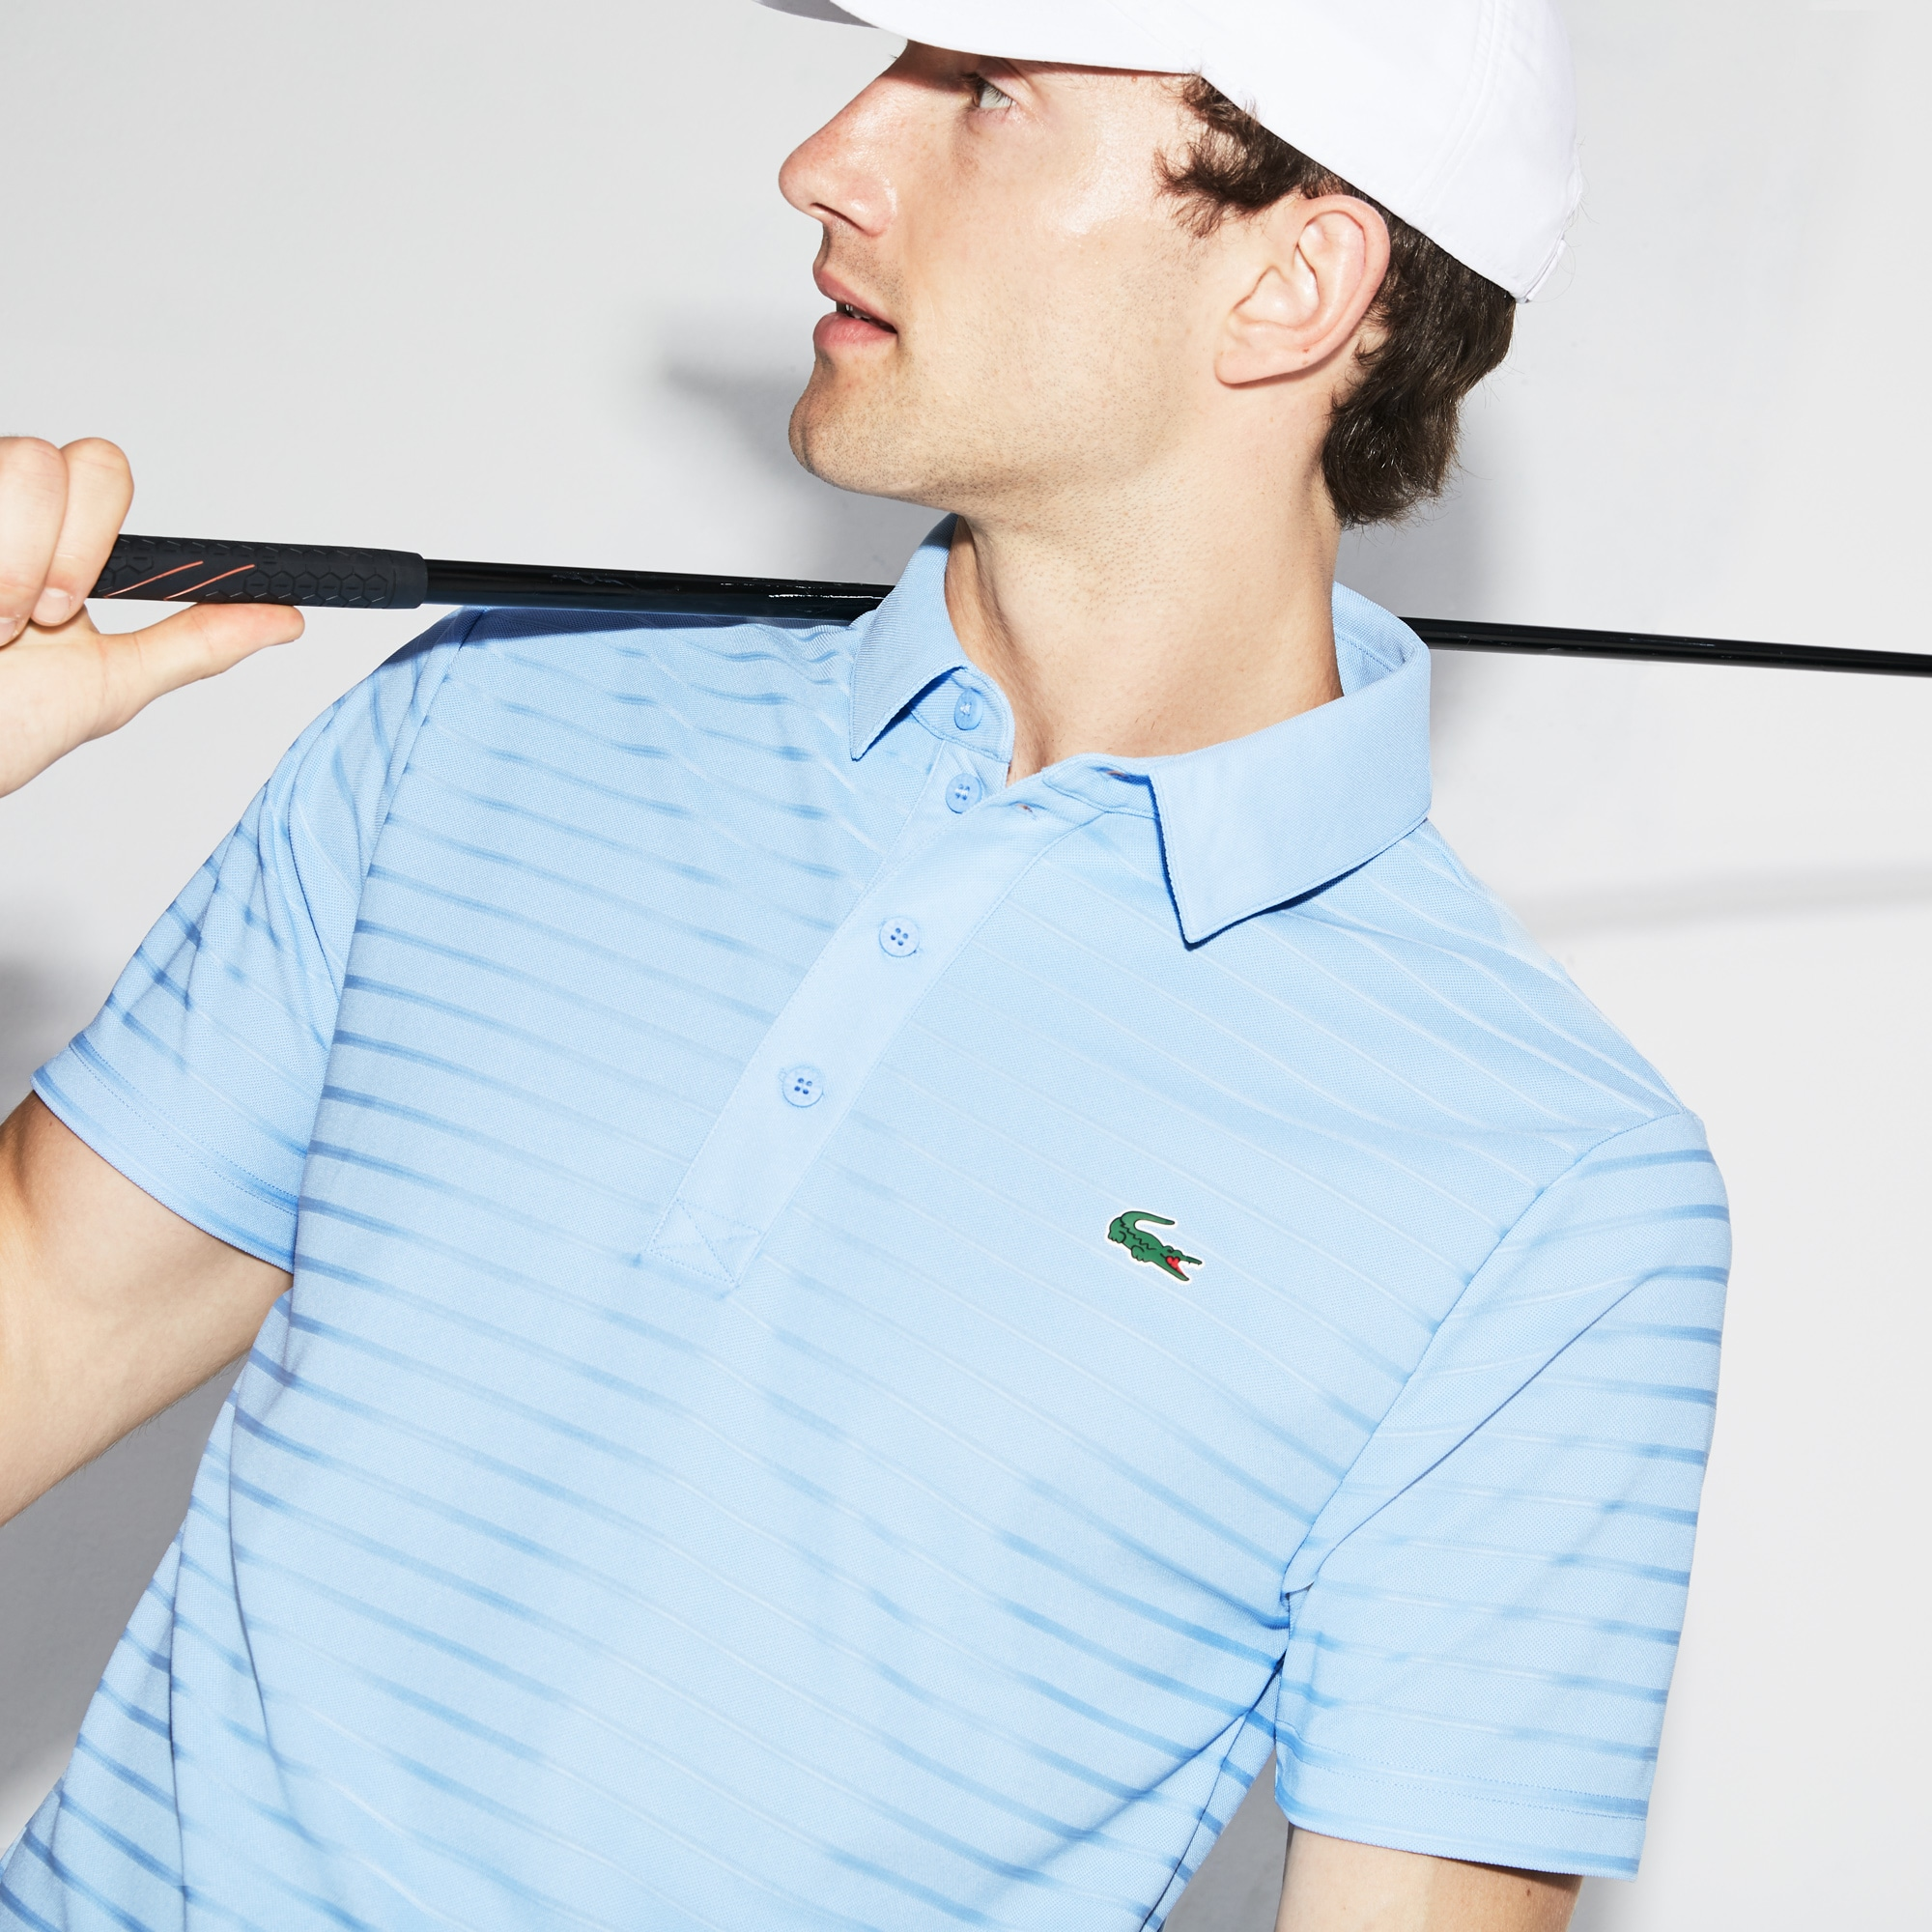 Lacoste - Herren-Funktions-Polo aus Jacquard-Jersey LACOSTE SPORT GOLF - 4